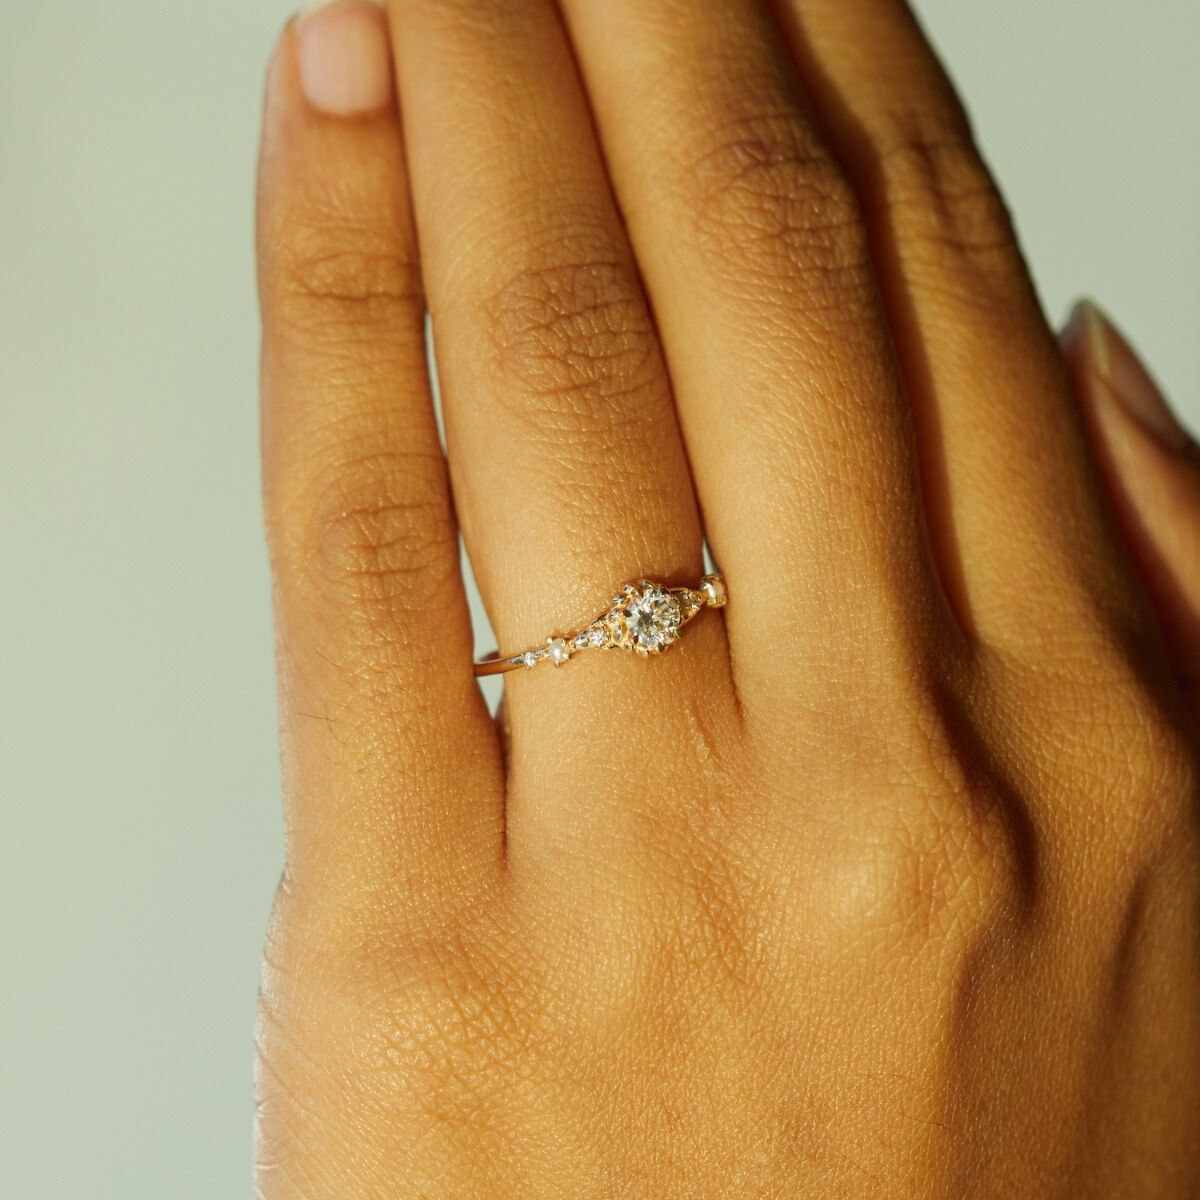 Clara's Dream Ring, Diamond image